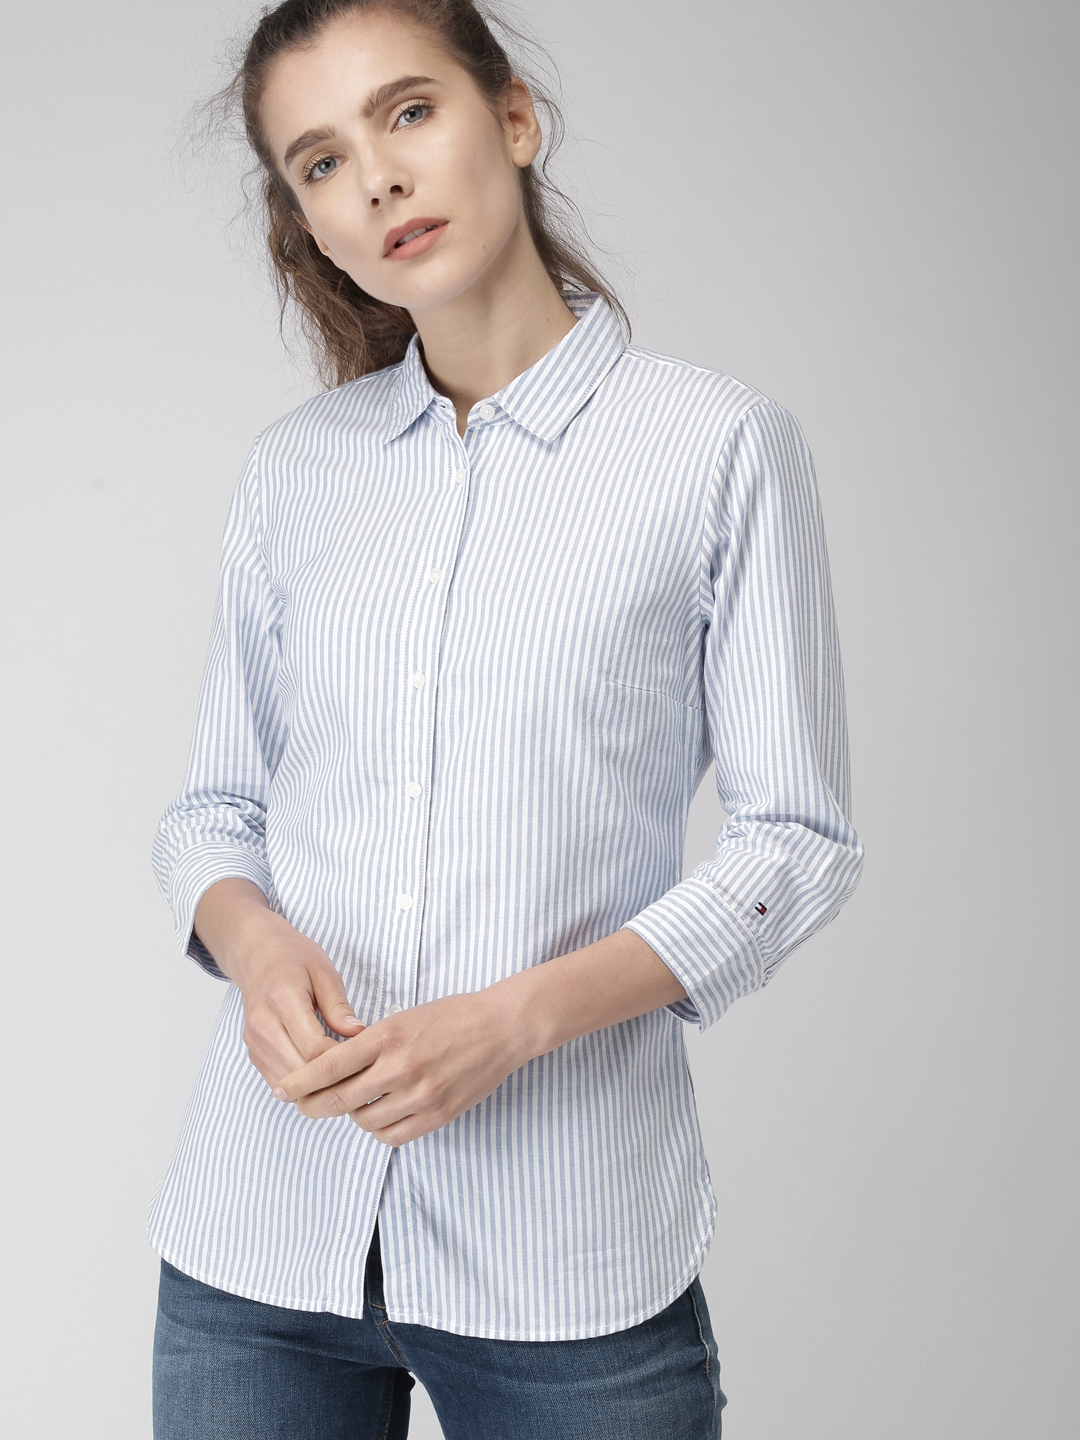 1dc78451 Buy Tommy Hilfiger Women Blue & White Slim Fit Striped Casual Shirt ...